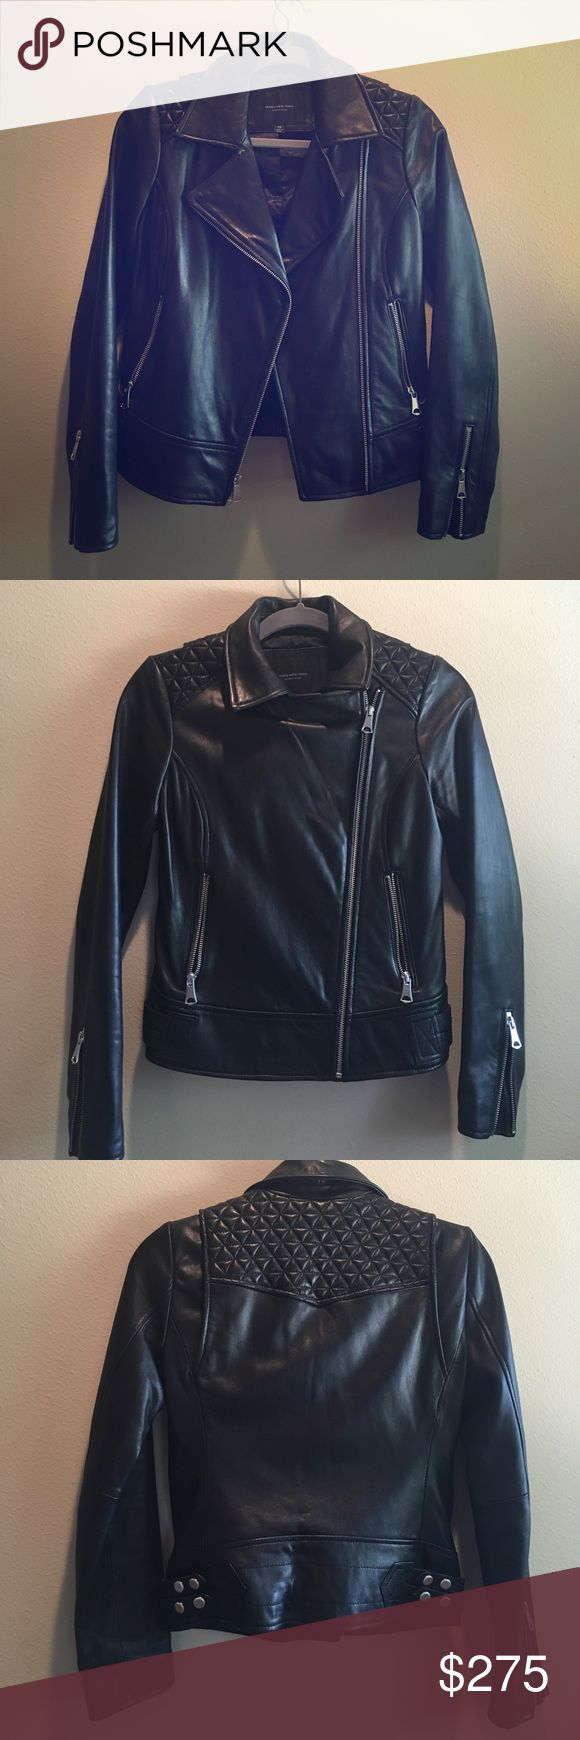 """Marc New York Leah Leather Moto Jacket Sleek leather styled in a bold design for the perfect statement in your next night out. Wing collar, zipper front, long sleeves with zipper details at cuff. Zip pockets at waist, quilted detail on shoulder. Approx 21"""" length. Genuine leather shell. Hidden inside pocket in lining! Andrew Marc Jackets & Coats"""